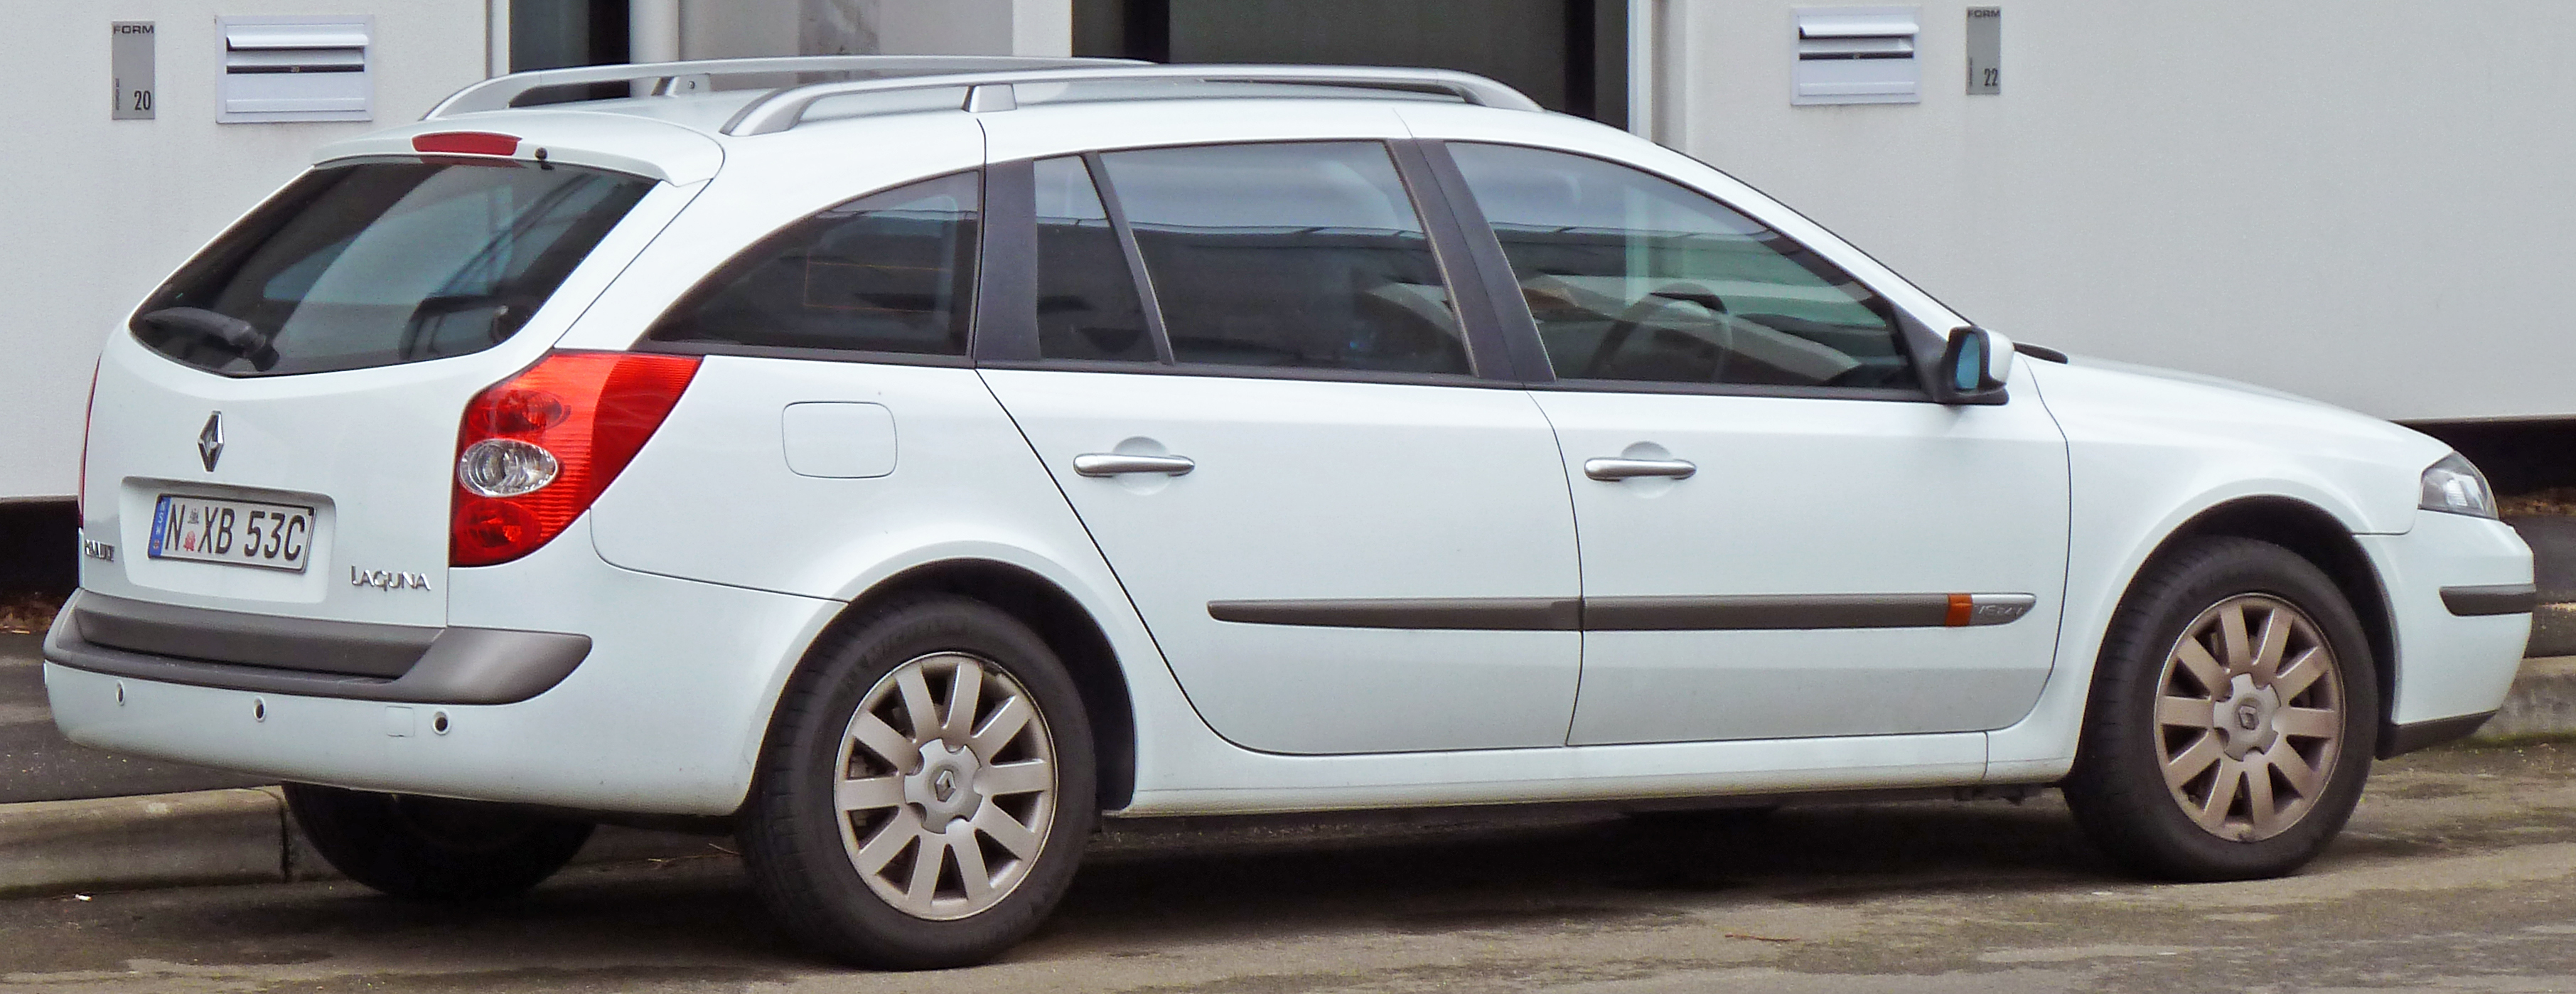 How the model Renault Laguna 2 appeared